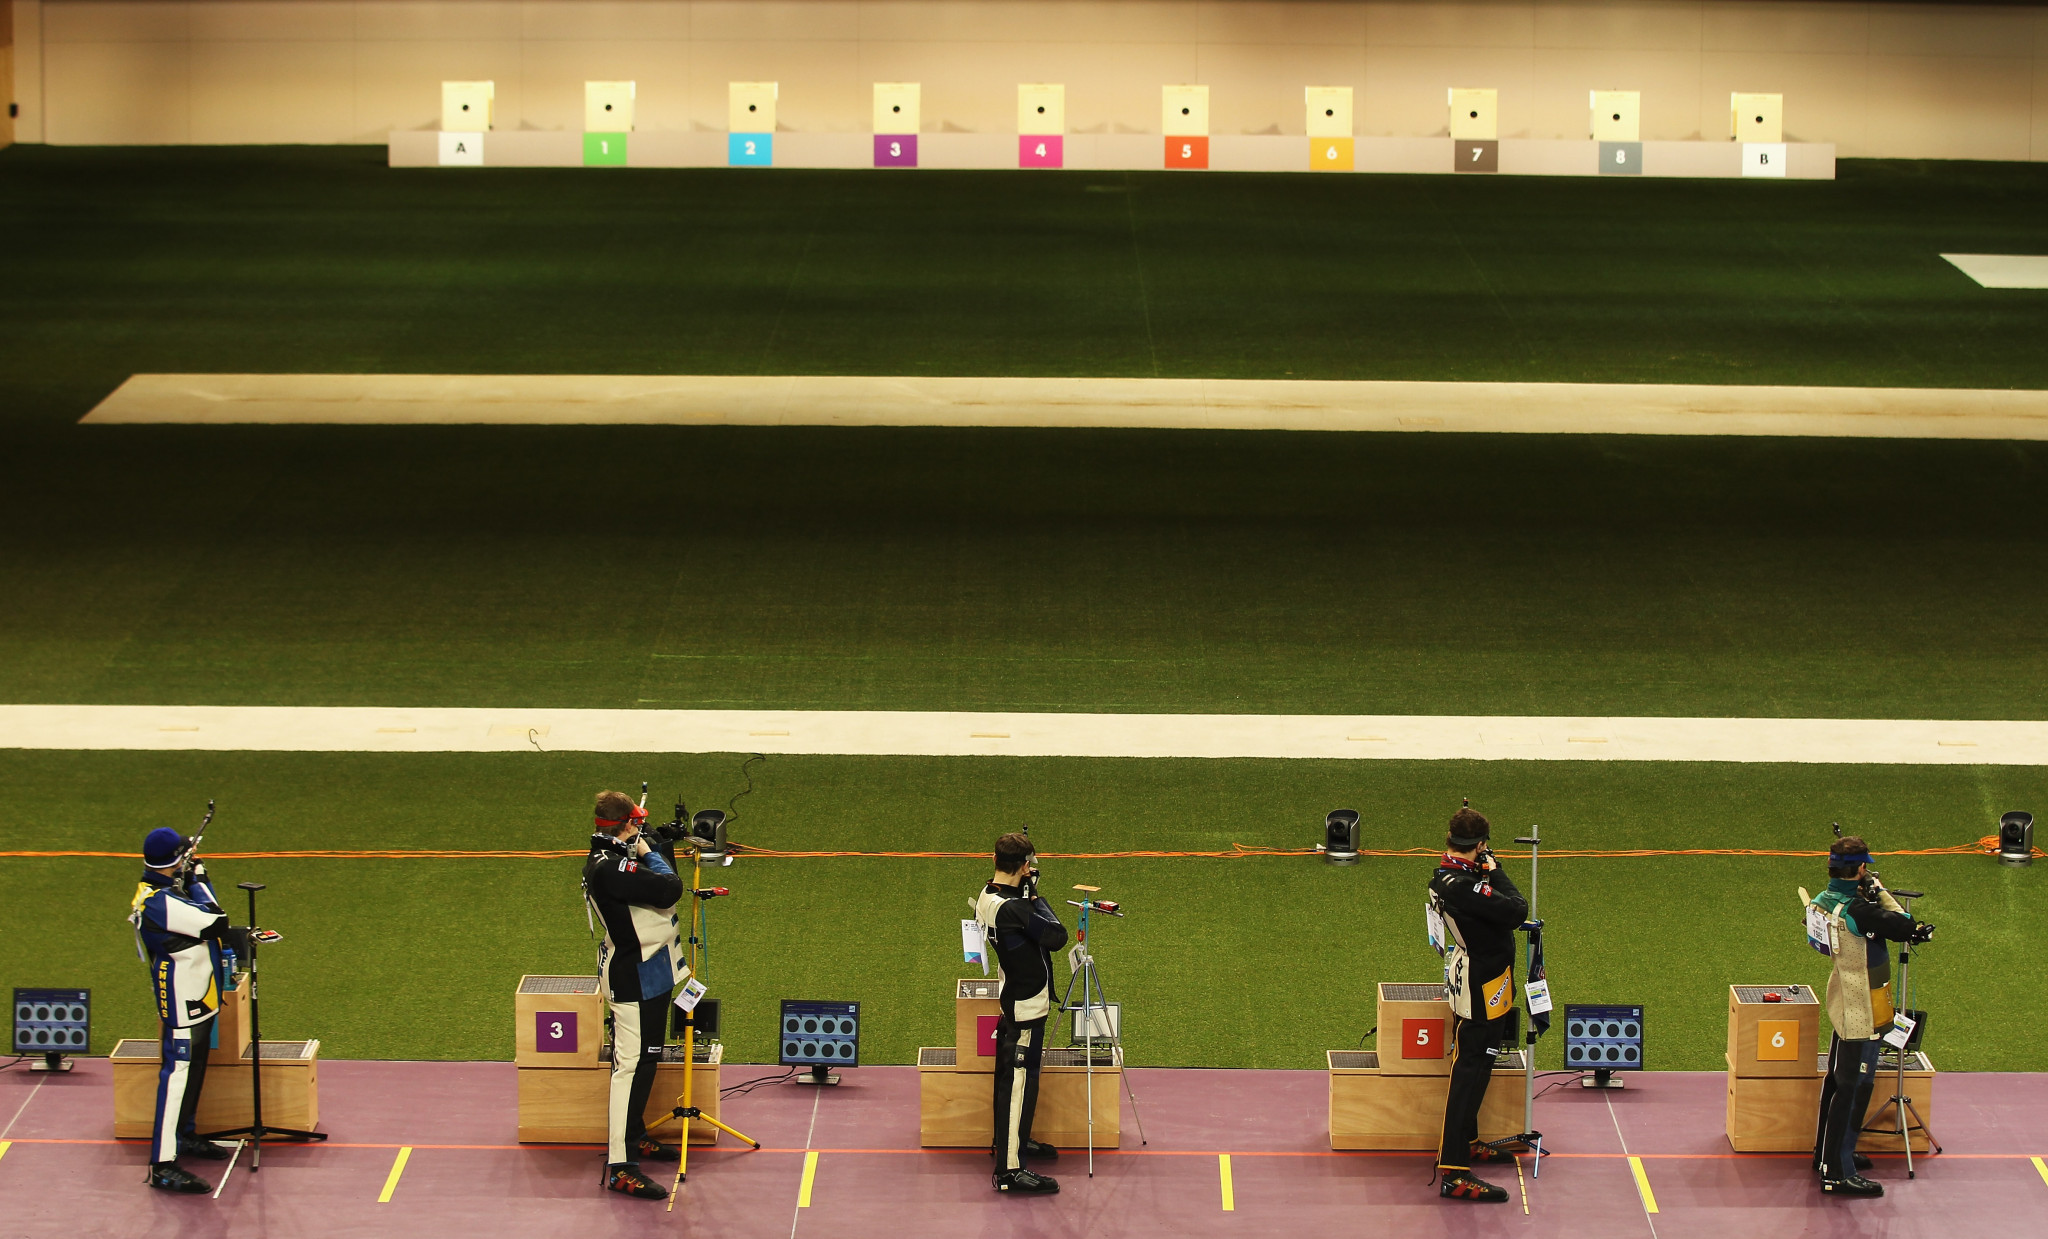 The European rankings could be used to determine the qualifiers for Tokyo 2020 as shooting events continue to be disrupted by the coronavirus pandemic ©Getty Images